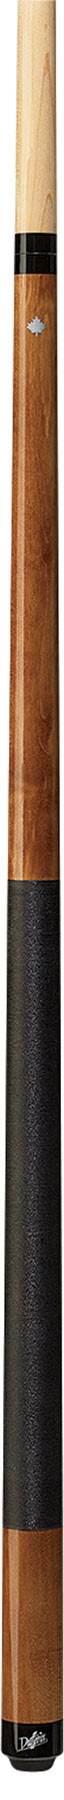 Dufferin D-234 Cherry Stained Pool Cue Stick